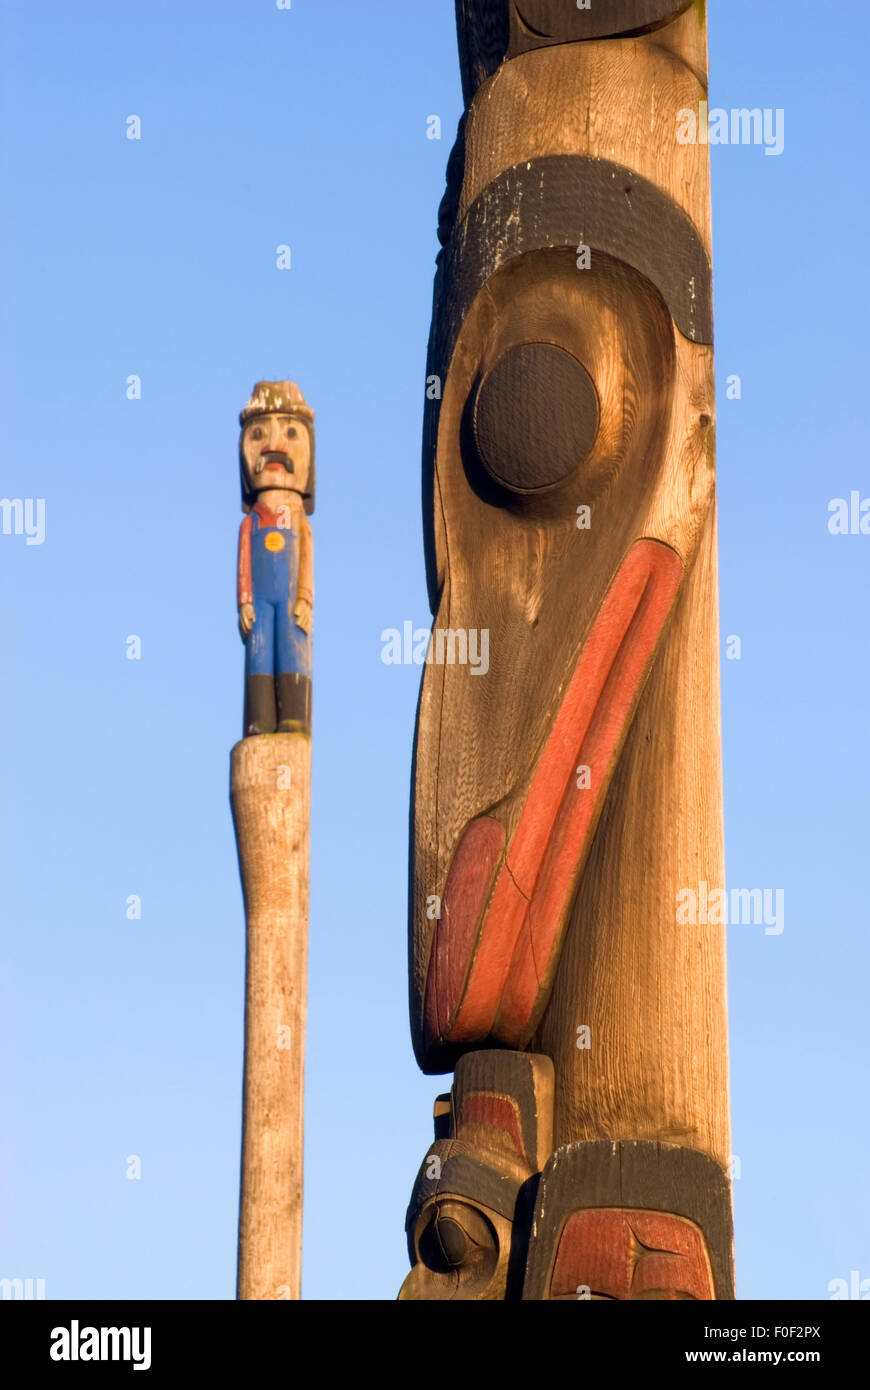 Totem pole, Victor Steinbrueck Park, Seattle, Washington - Stock Image